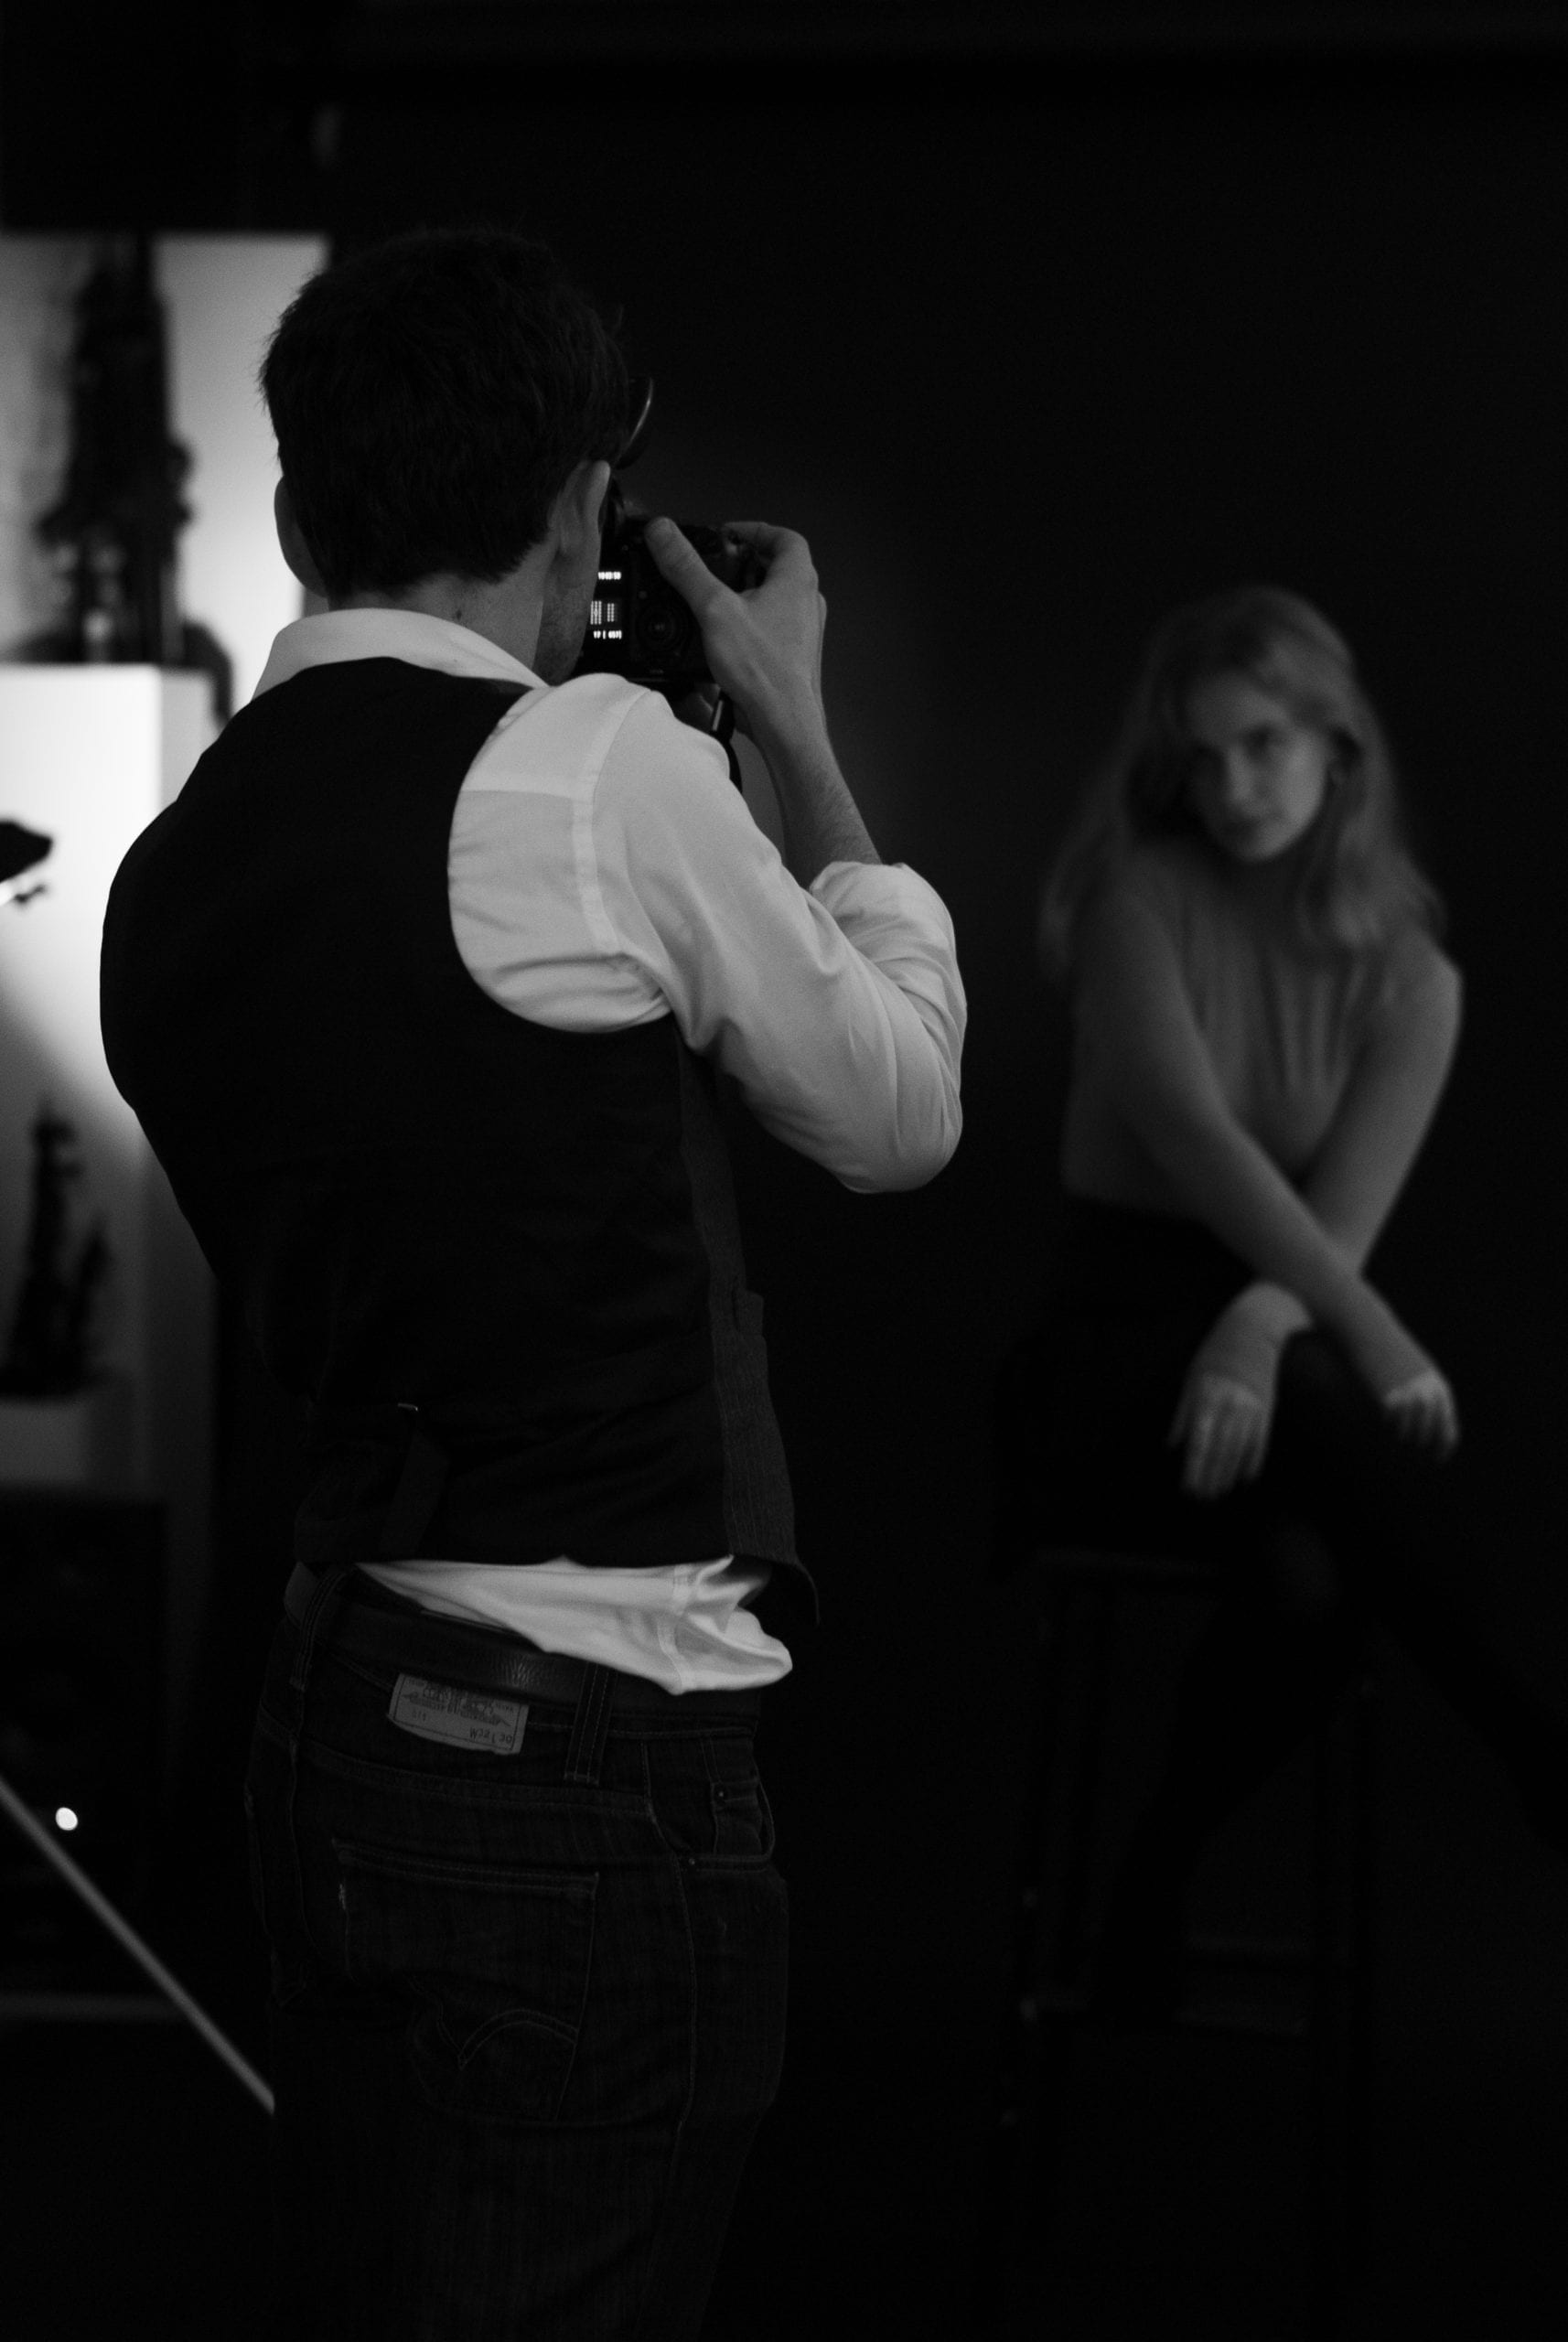 A man holding a camera takes a photo of a woman in a photo studio